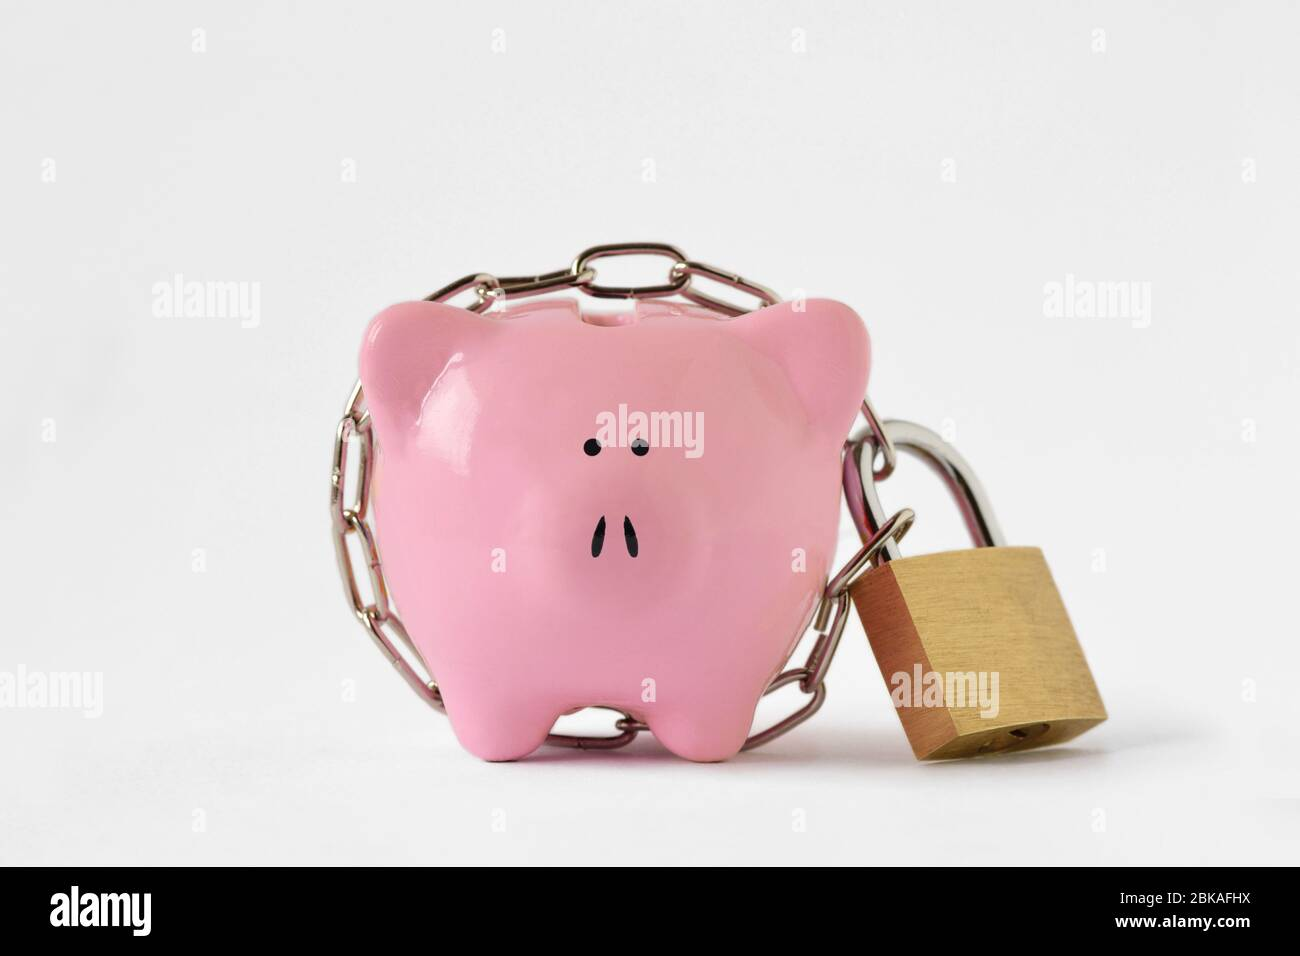 Piggy bank locked with chain and padlock on white background - Concept of savings and financial protection Stock Photo